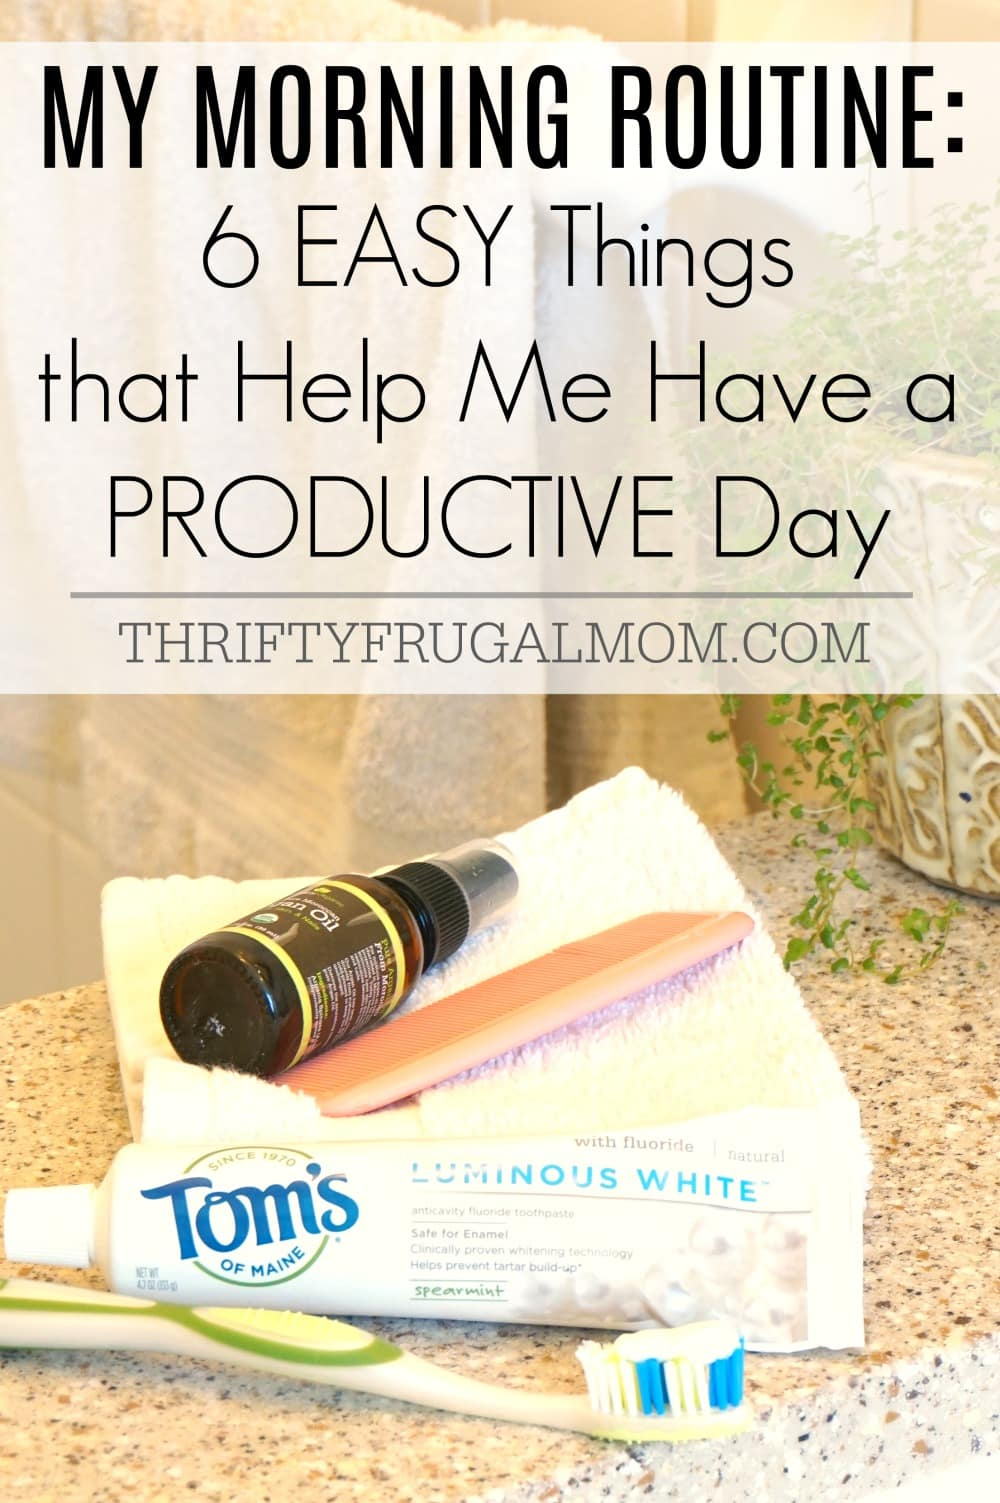 One of the easiest ways to have a productive day is by establishing a good morning routine. Doing these 6 simple things makes such a difference for me!